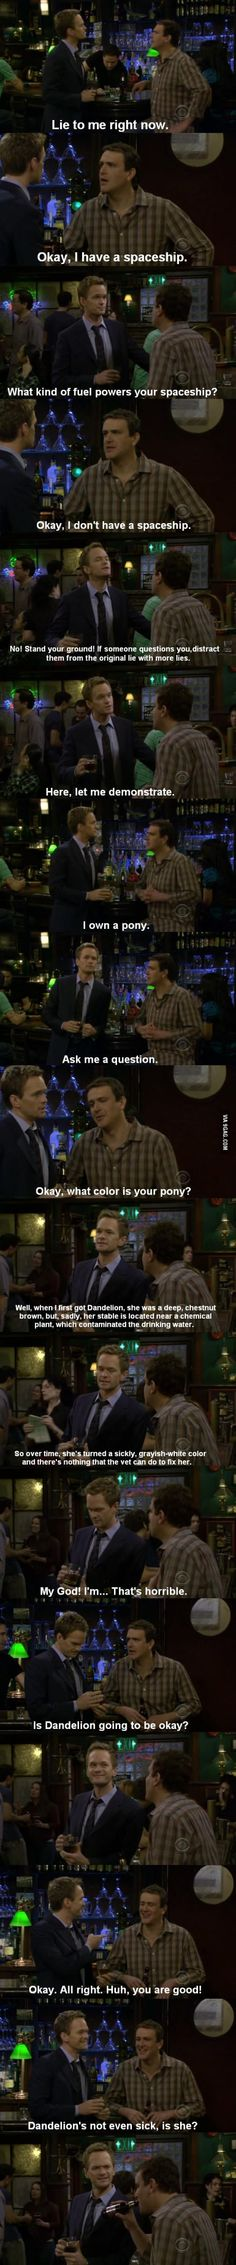 Awesome lying skills #howimetyourmother #himym  one of my favorite sceens